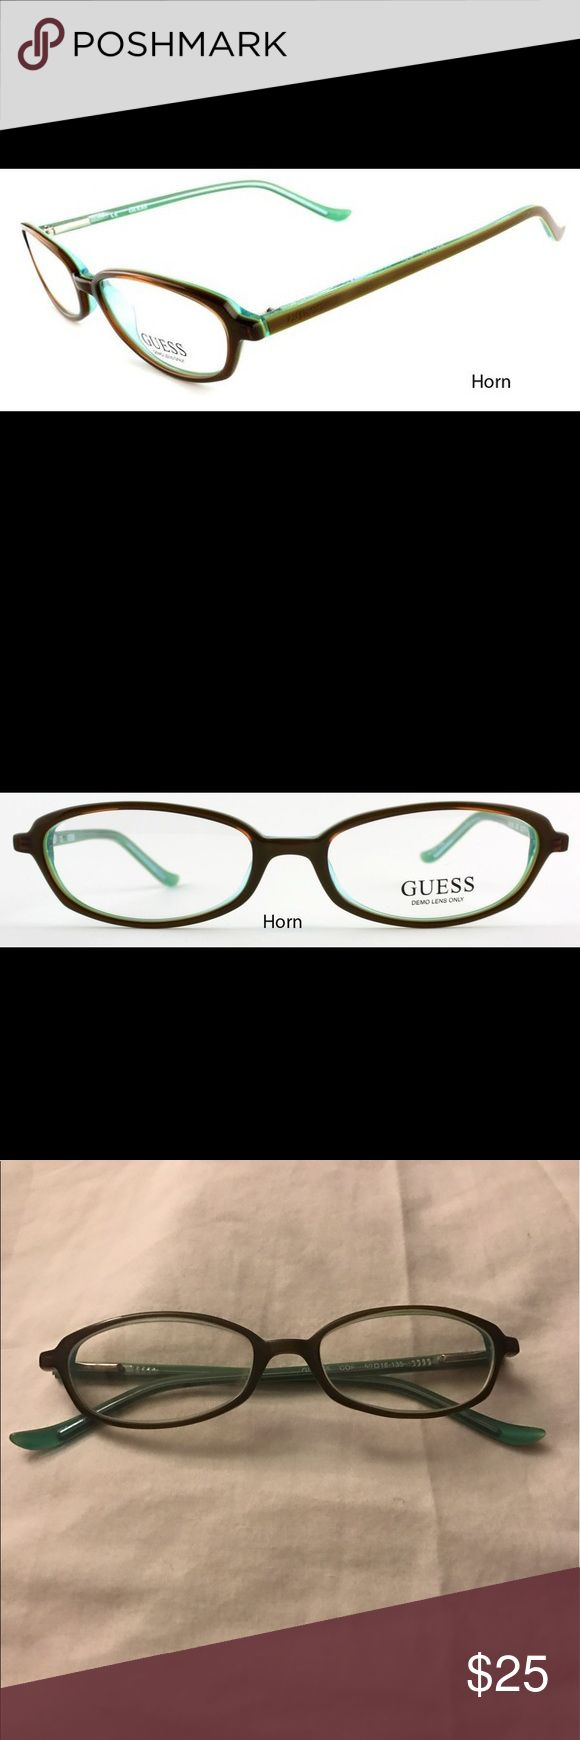 Guess prescription glasses frames👓 Excellent used Guess prescription eyeglass frames. They are horn colored brown with green inside. They are adorable on! The prescription in it will just need to be changed to yours. ☺️ I have a case they are being stored in listed as well, I am willing to bundle these two items! Guess Accessories Glasses